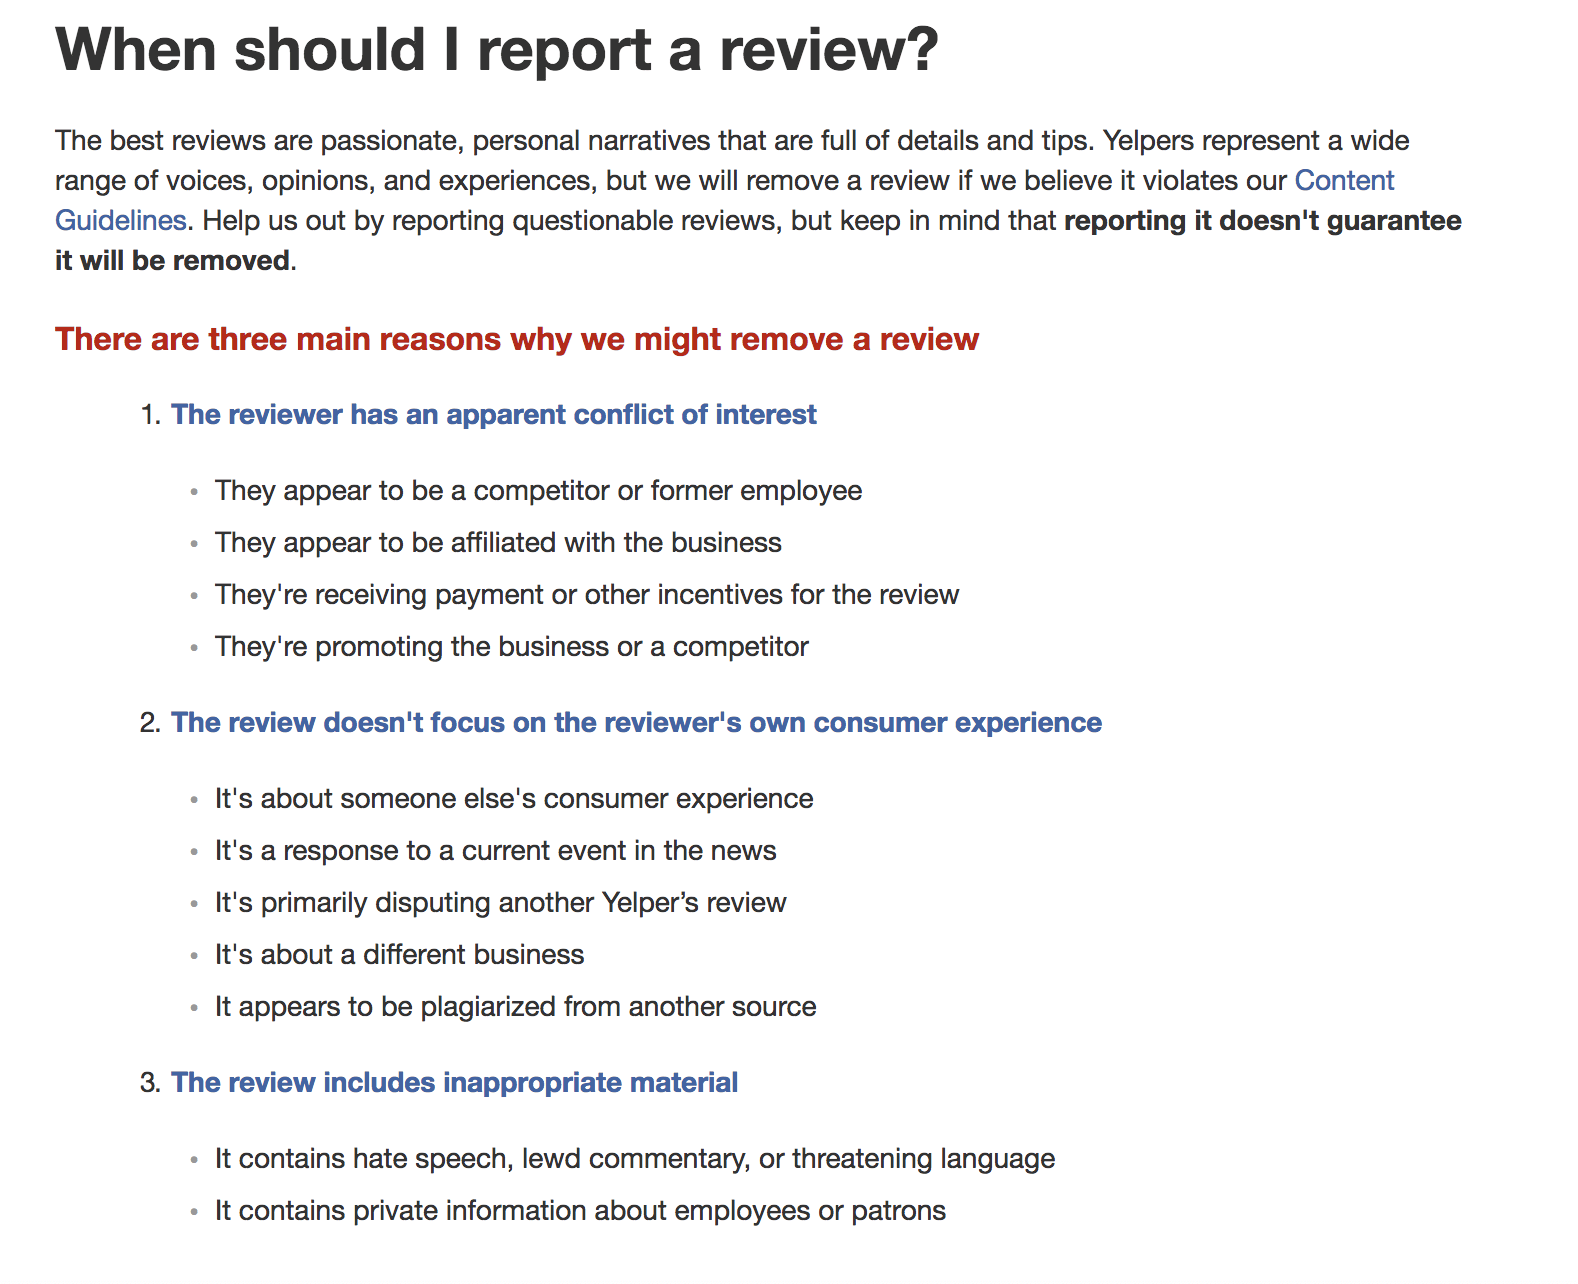 When to report a review